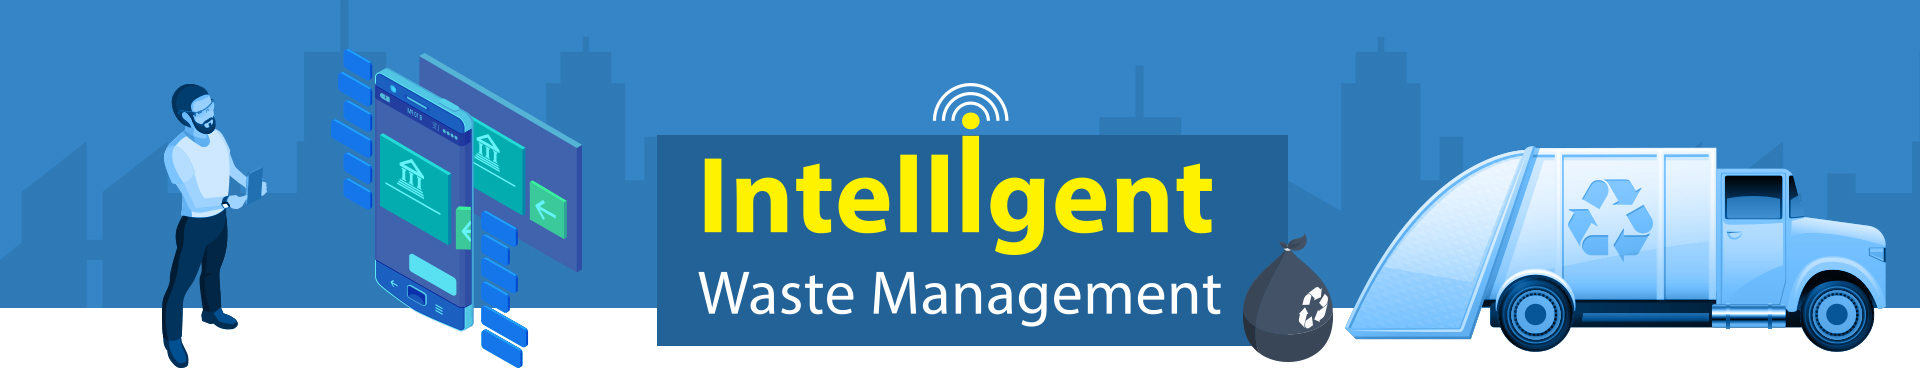 Intelligent-Waste-Management